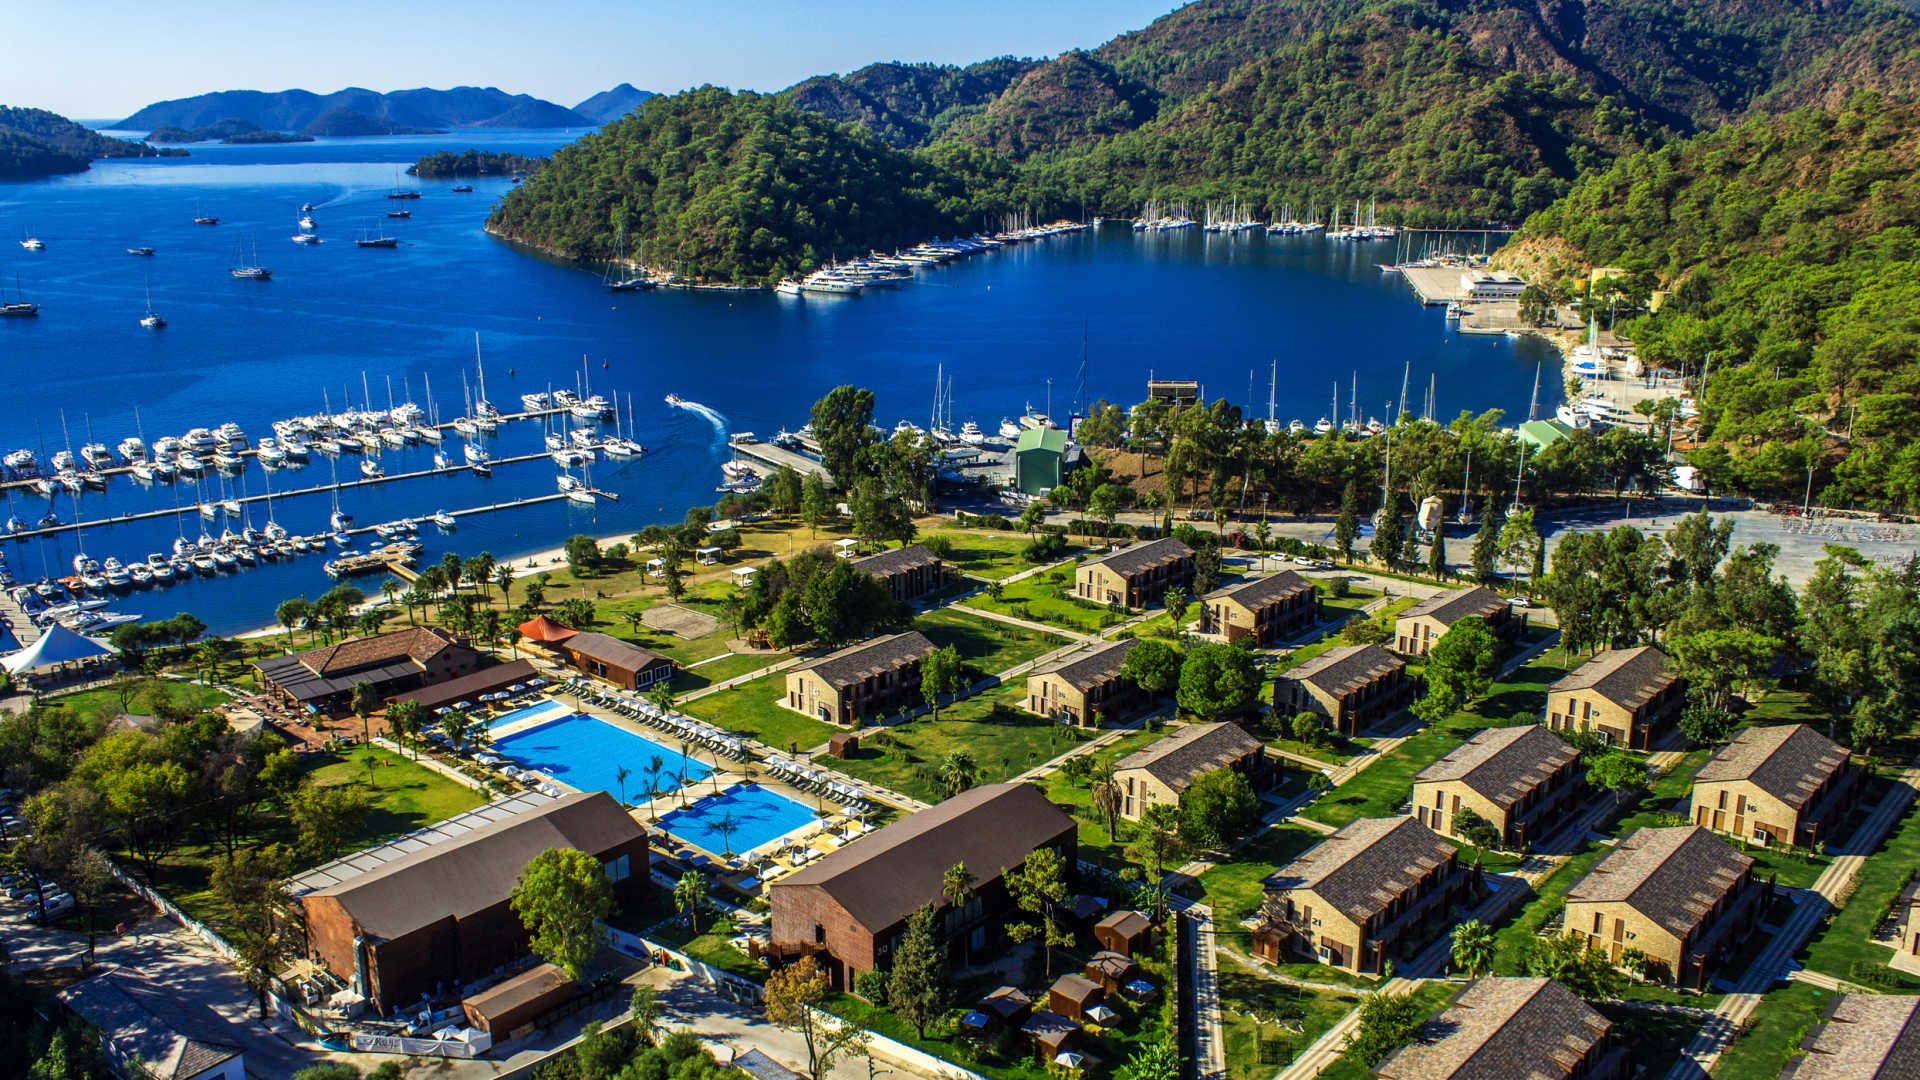 Gocek,Light Tours Vacation Activities, Holiday Locations,Gocek Transfer 86